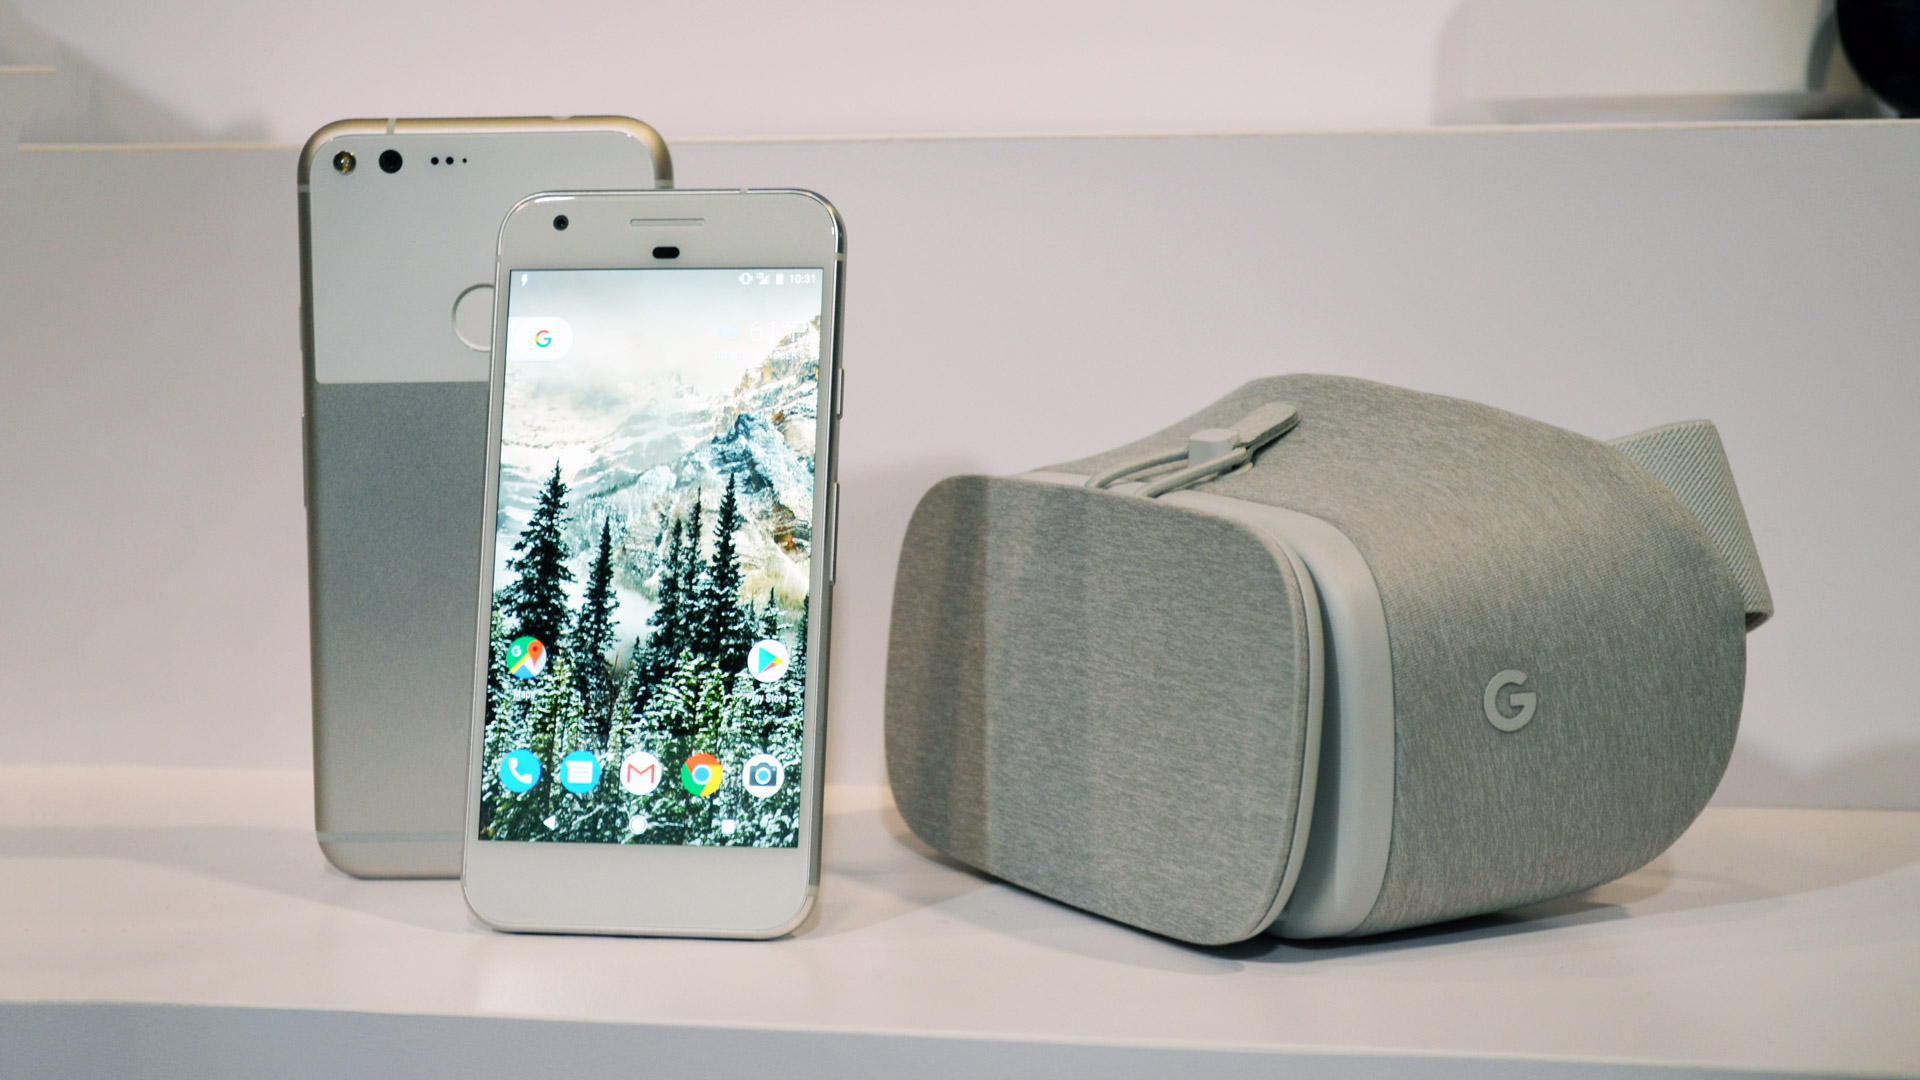 Картинки по запросу Google Expects 11 Daydream Ready Phones Available by Year's End